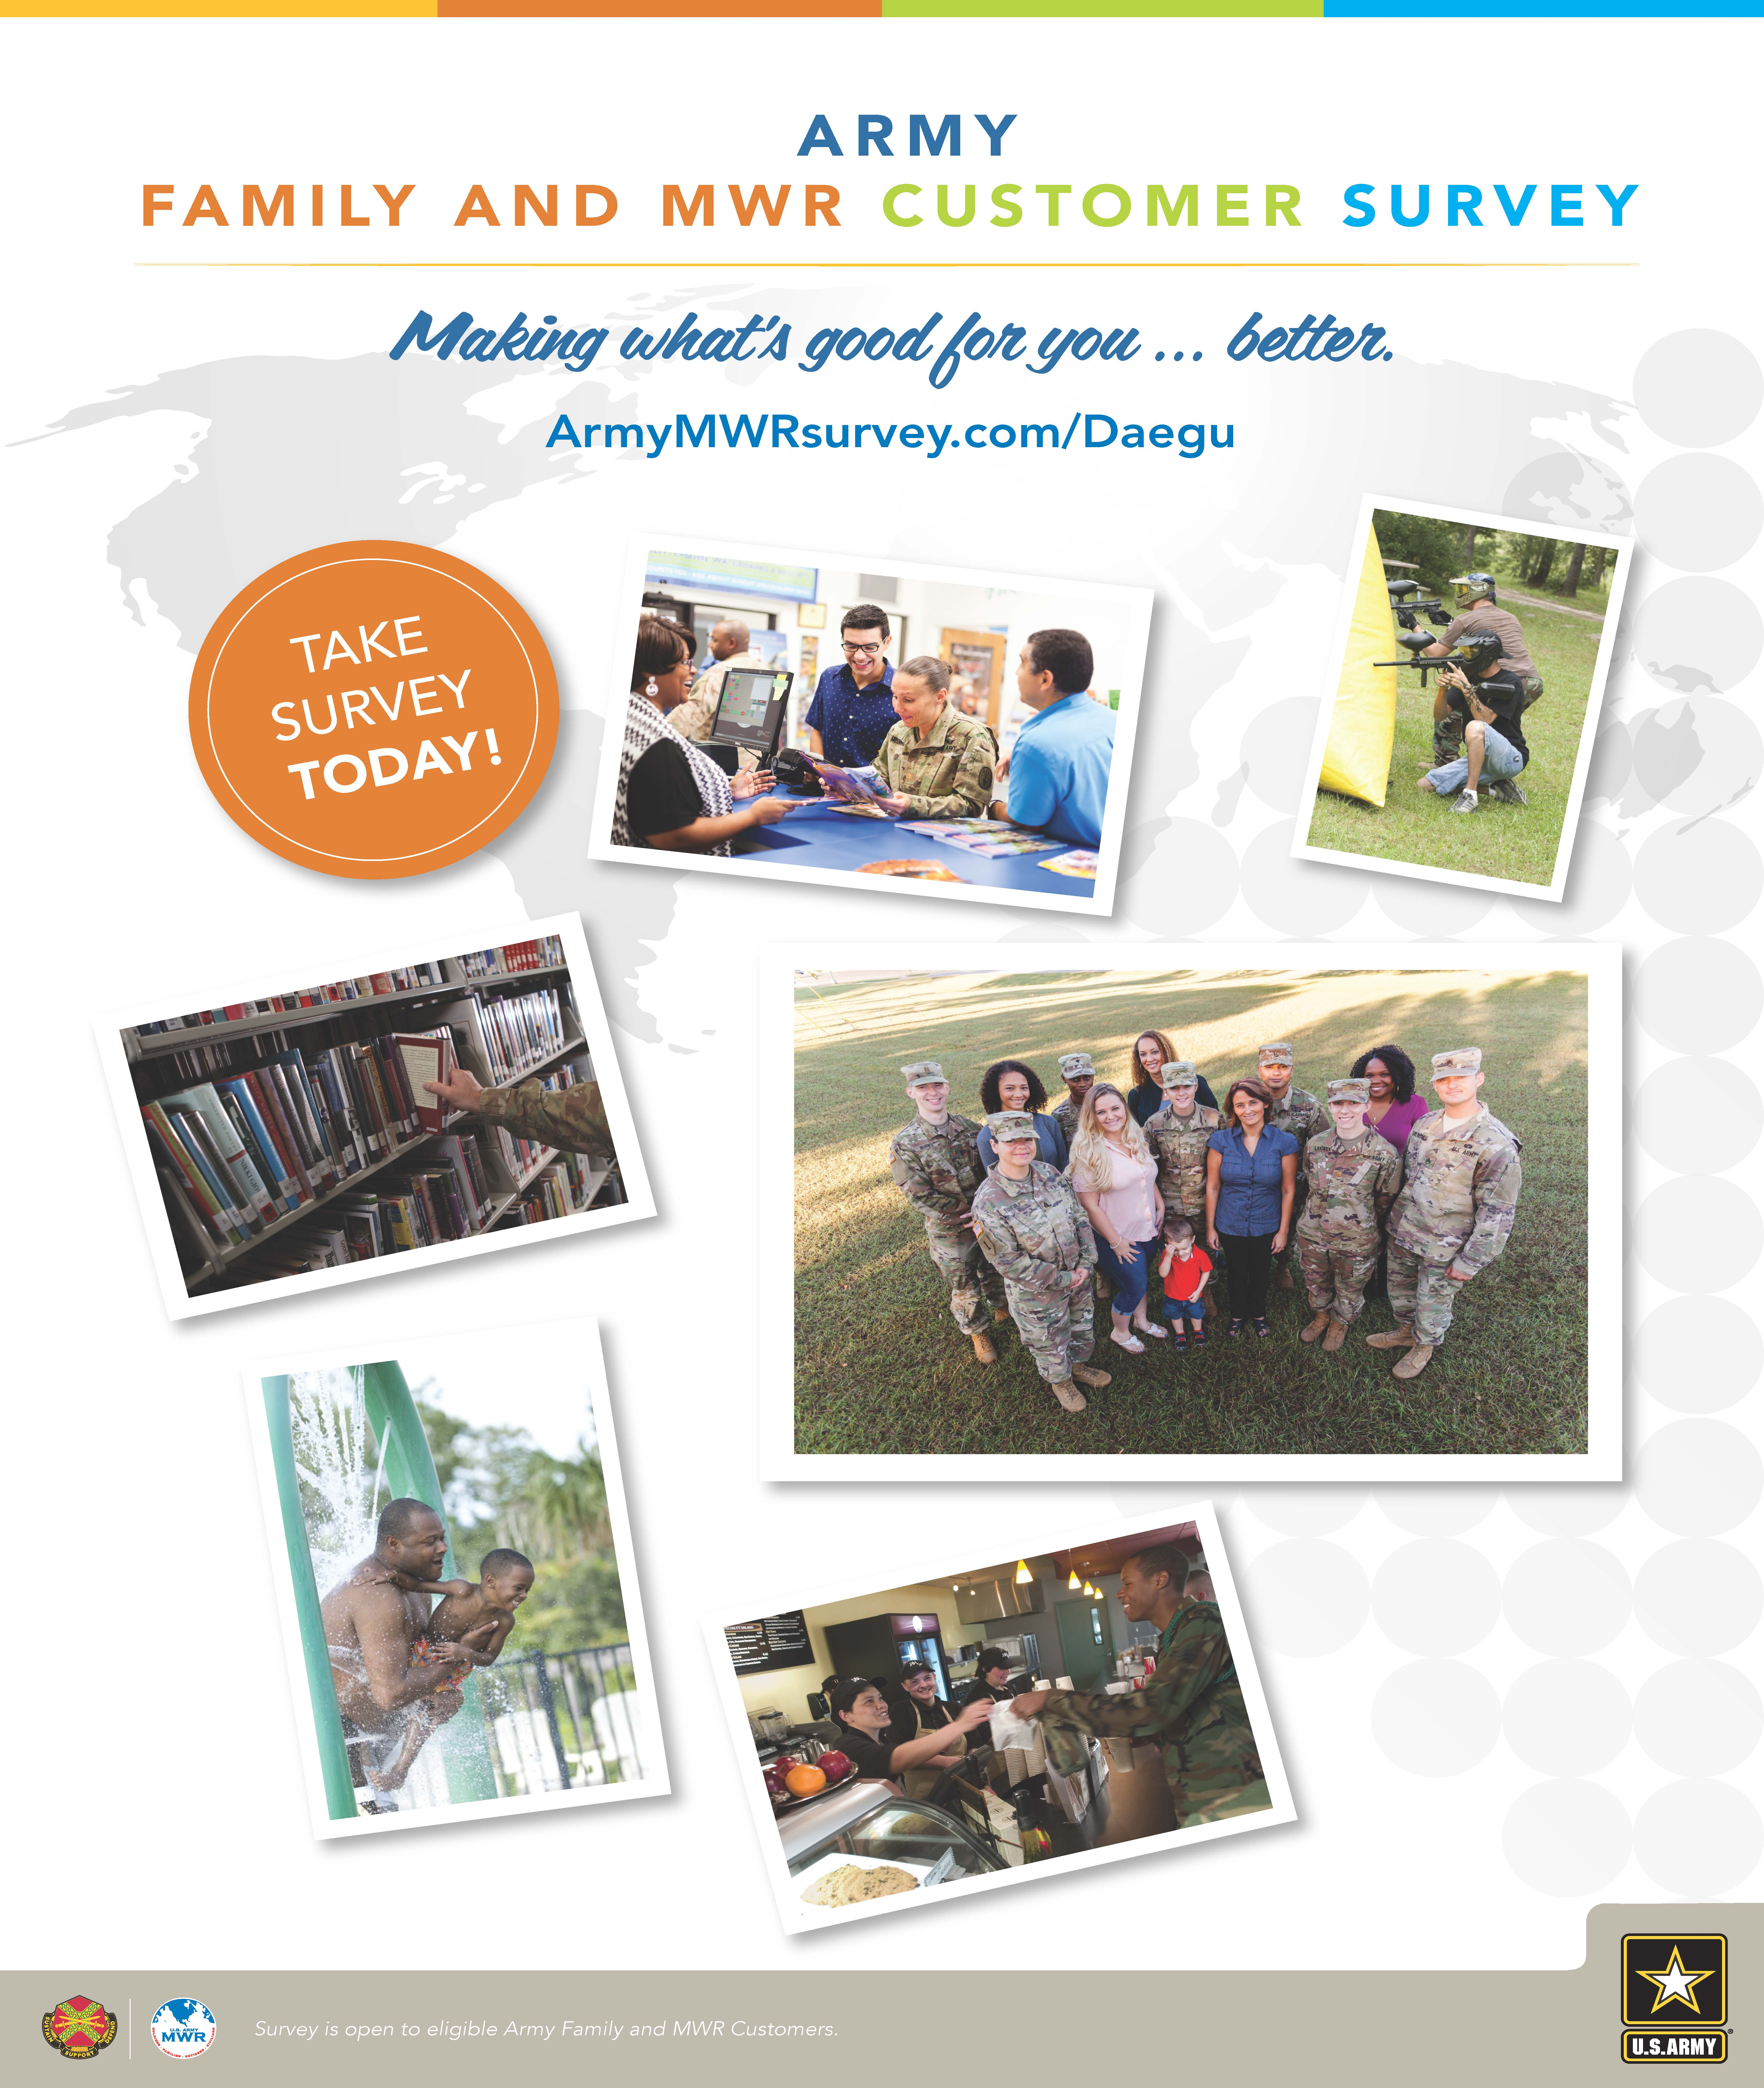 Army Family and MWR Customer Survey